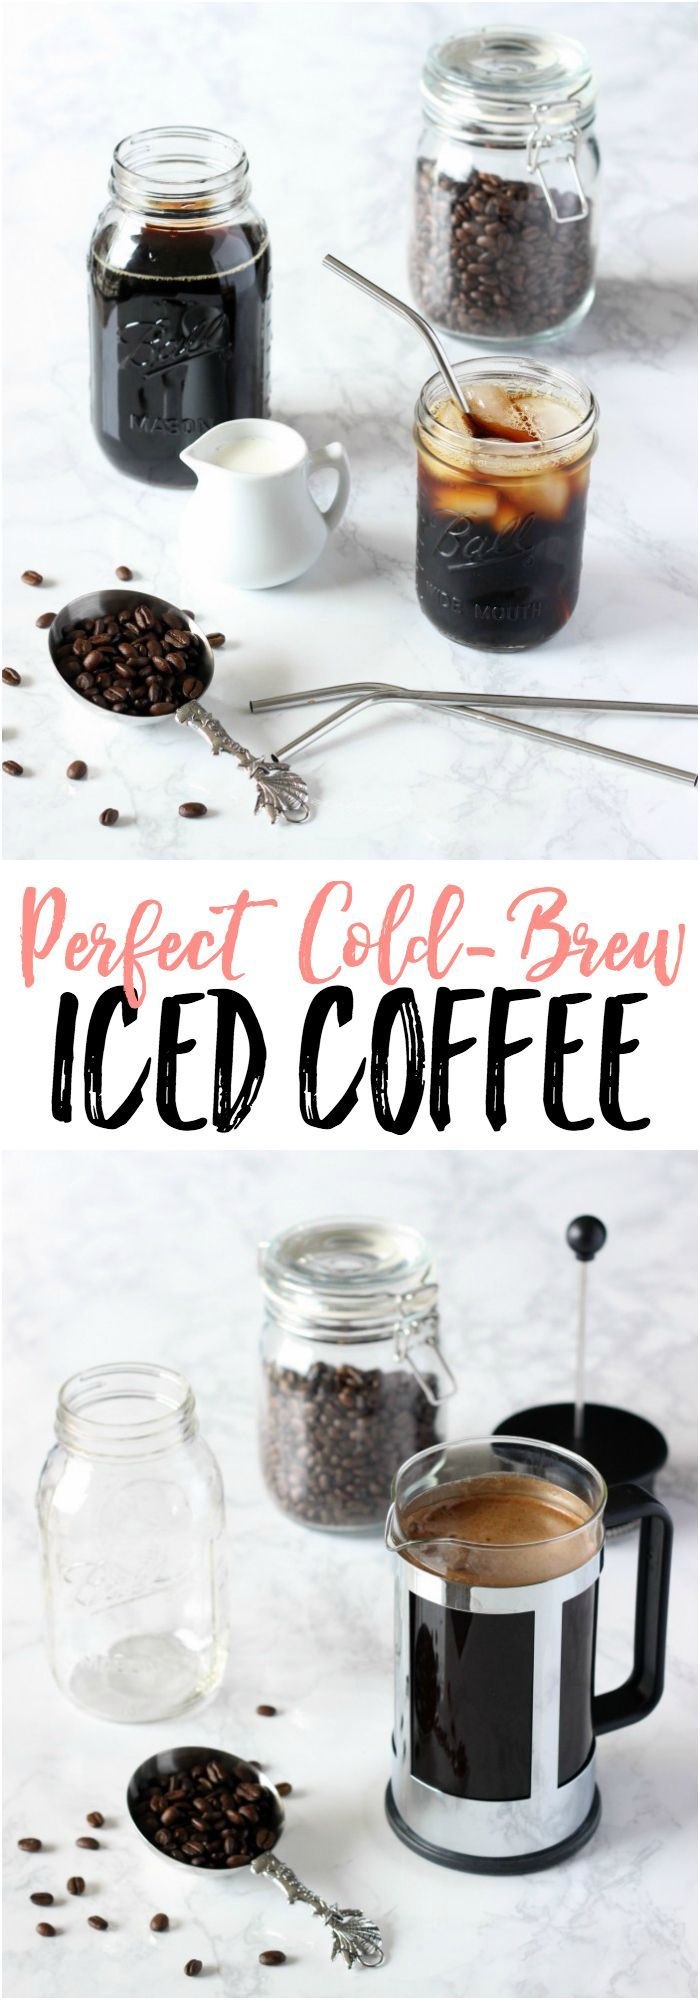 Need a wake up call?? Learn how to make PERFECT Cold Brew Iced Coffee right at home! It's so easy!